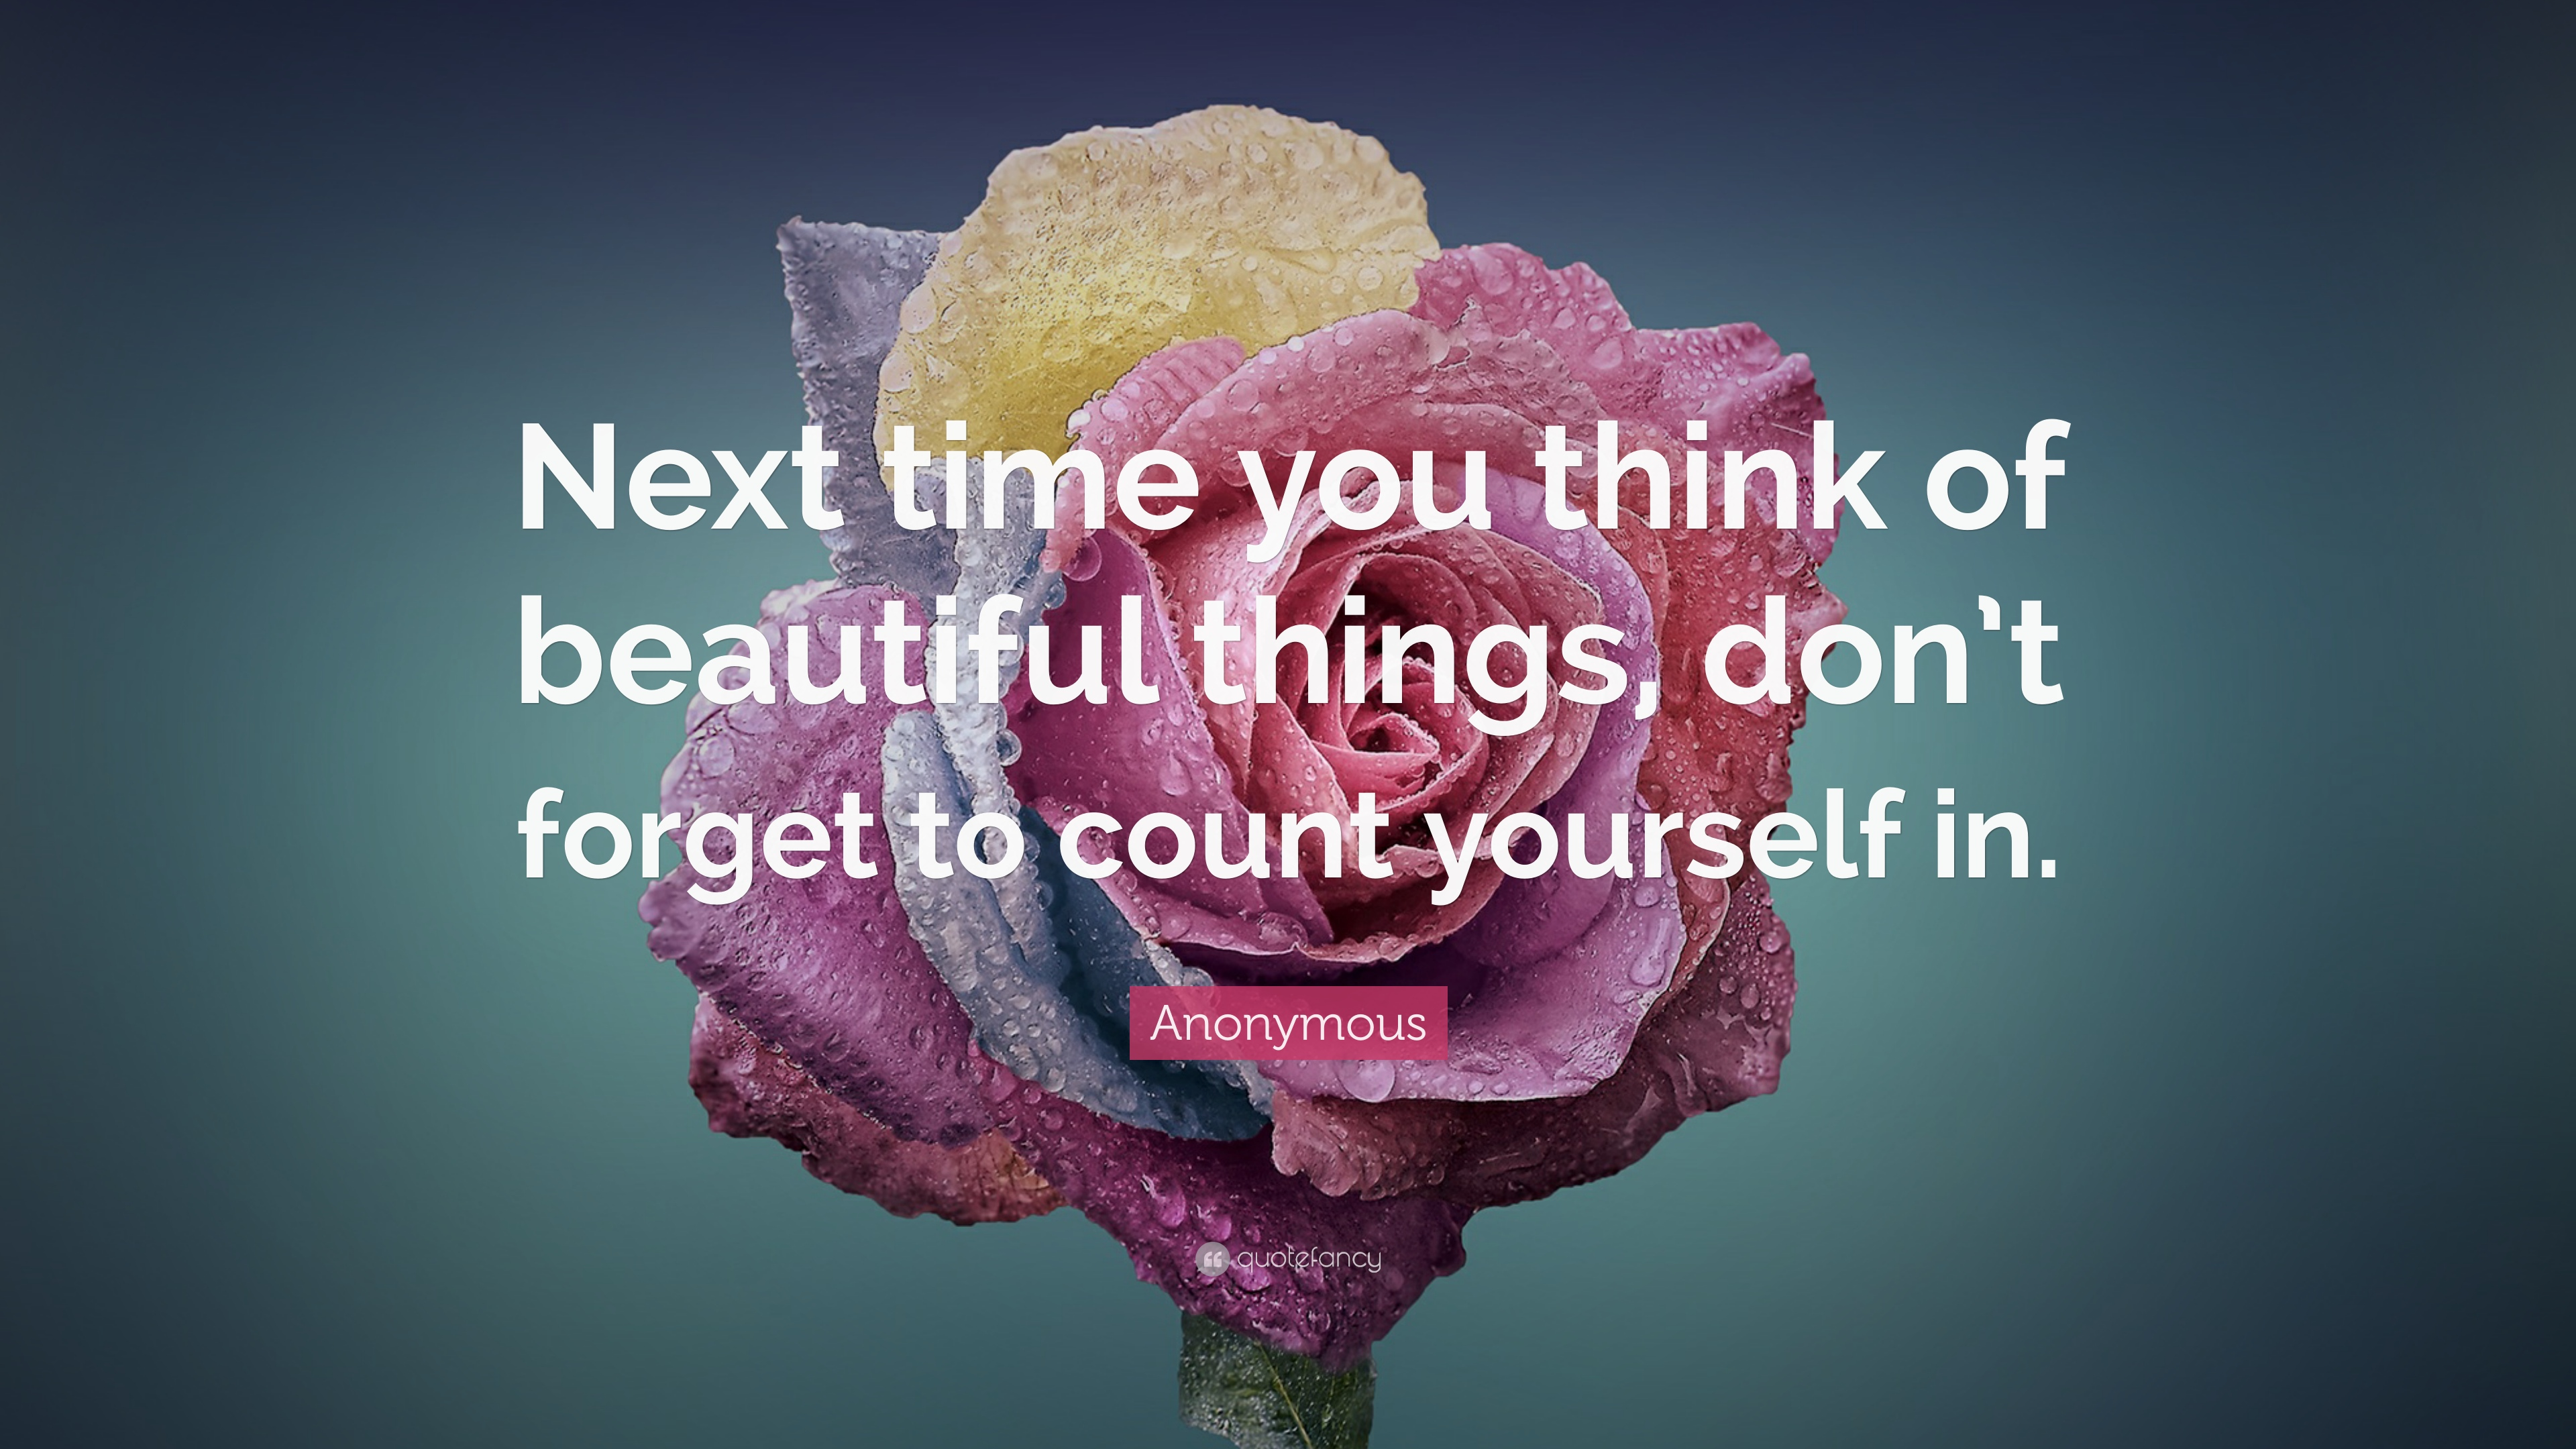 Image of: Never Beauty Quotes next Time You Think Of Beautiful Things Dont Forget Quotefancy Beauty Quotes 30 Wallpapers Quotefancy